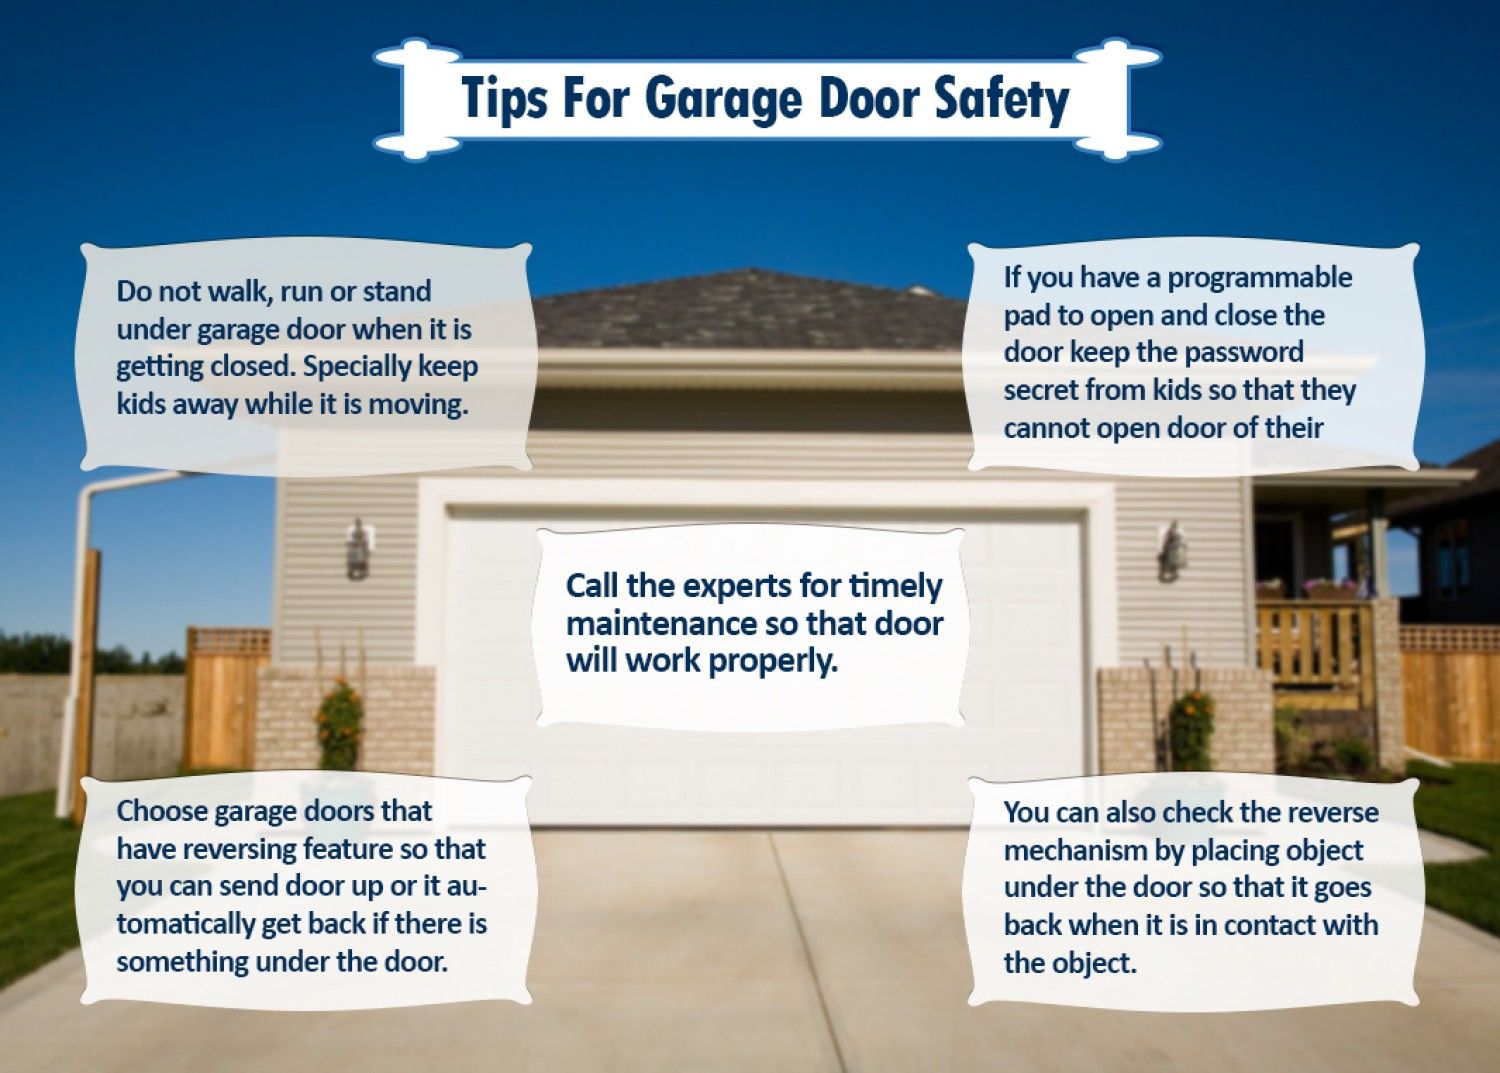 The Door & Access Systems Manufacturers Association and the International Door Association have named June as garage door safety month. This makes it the perfect time to increase the safety awareness related to garage doors.